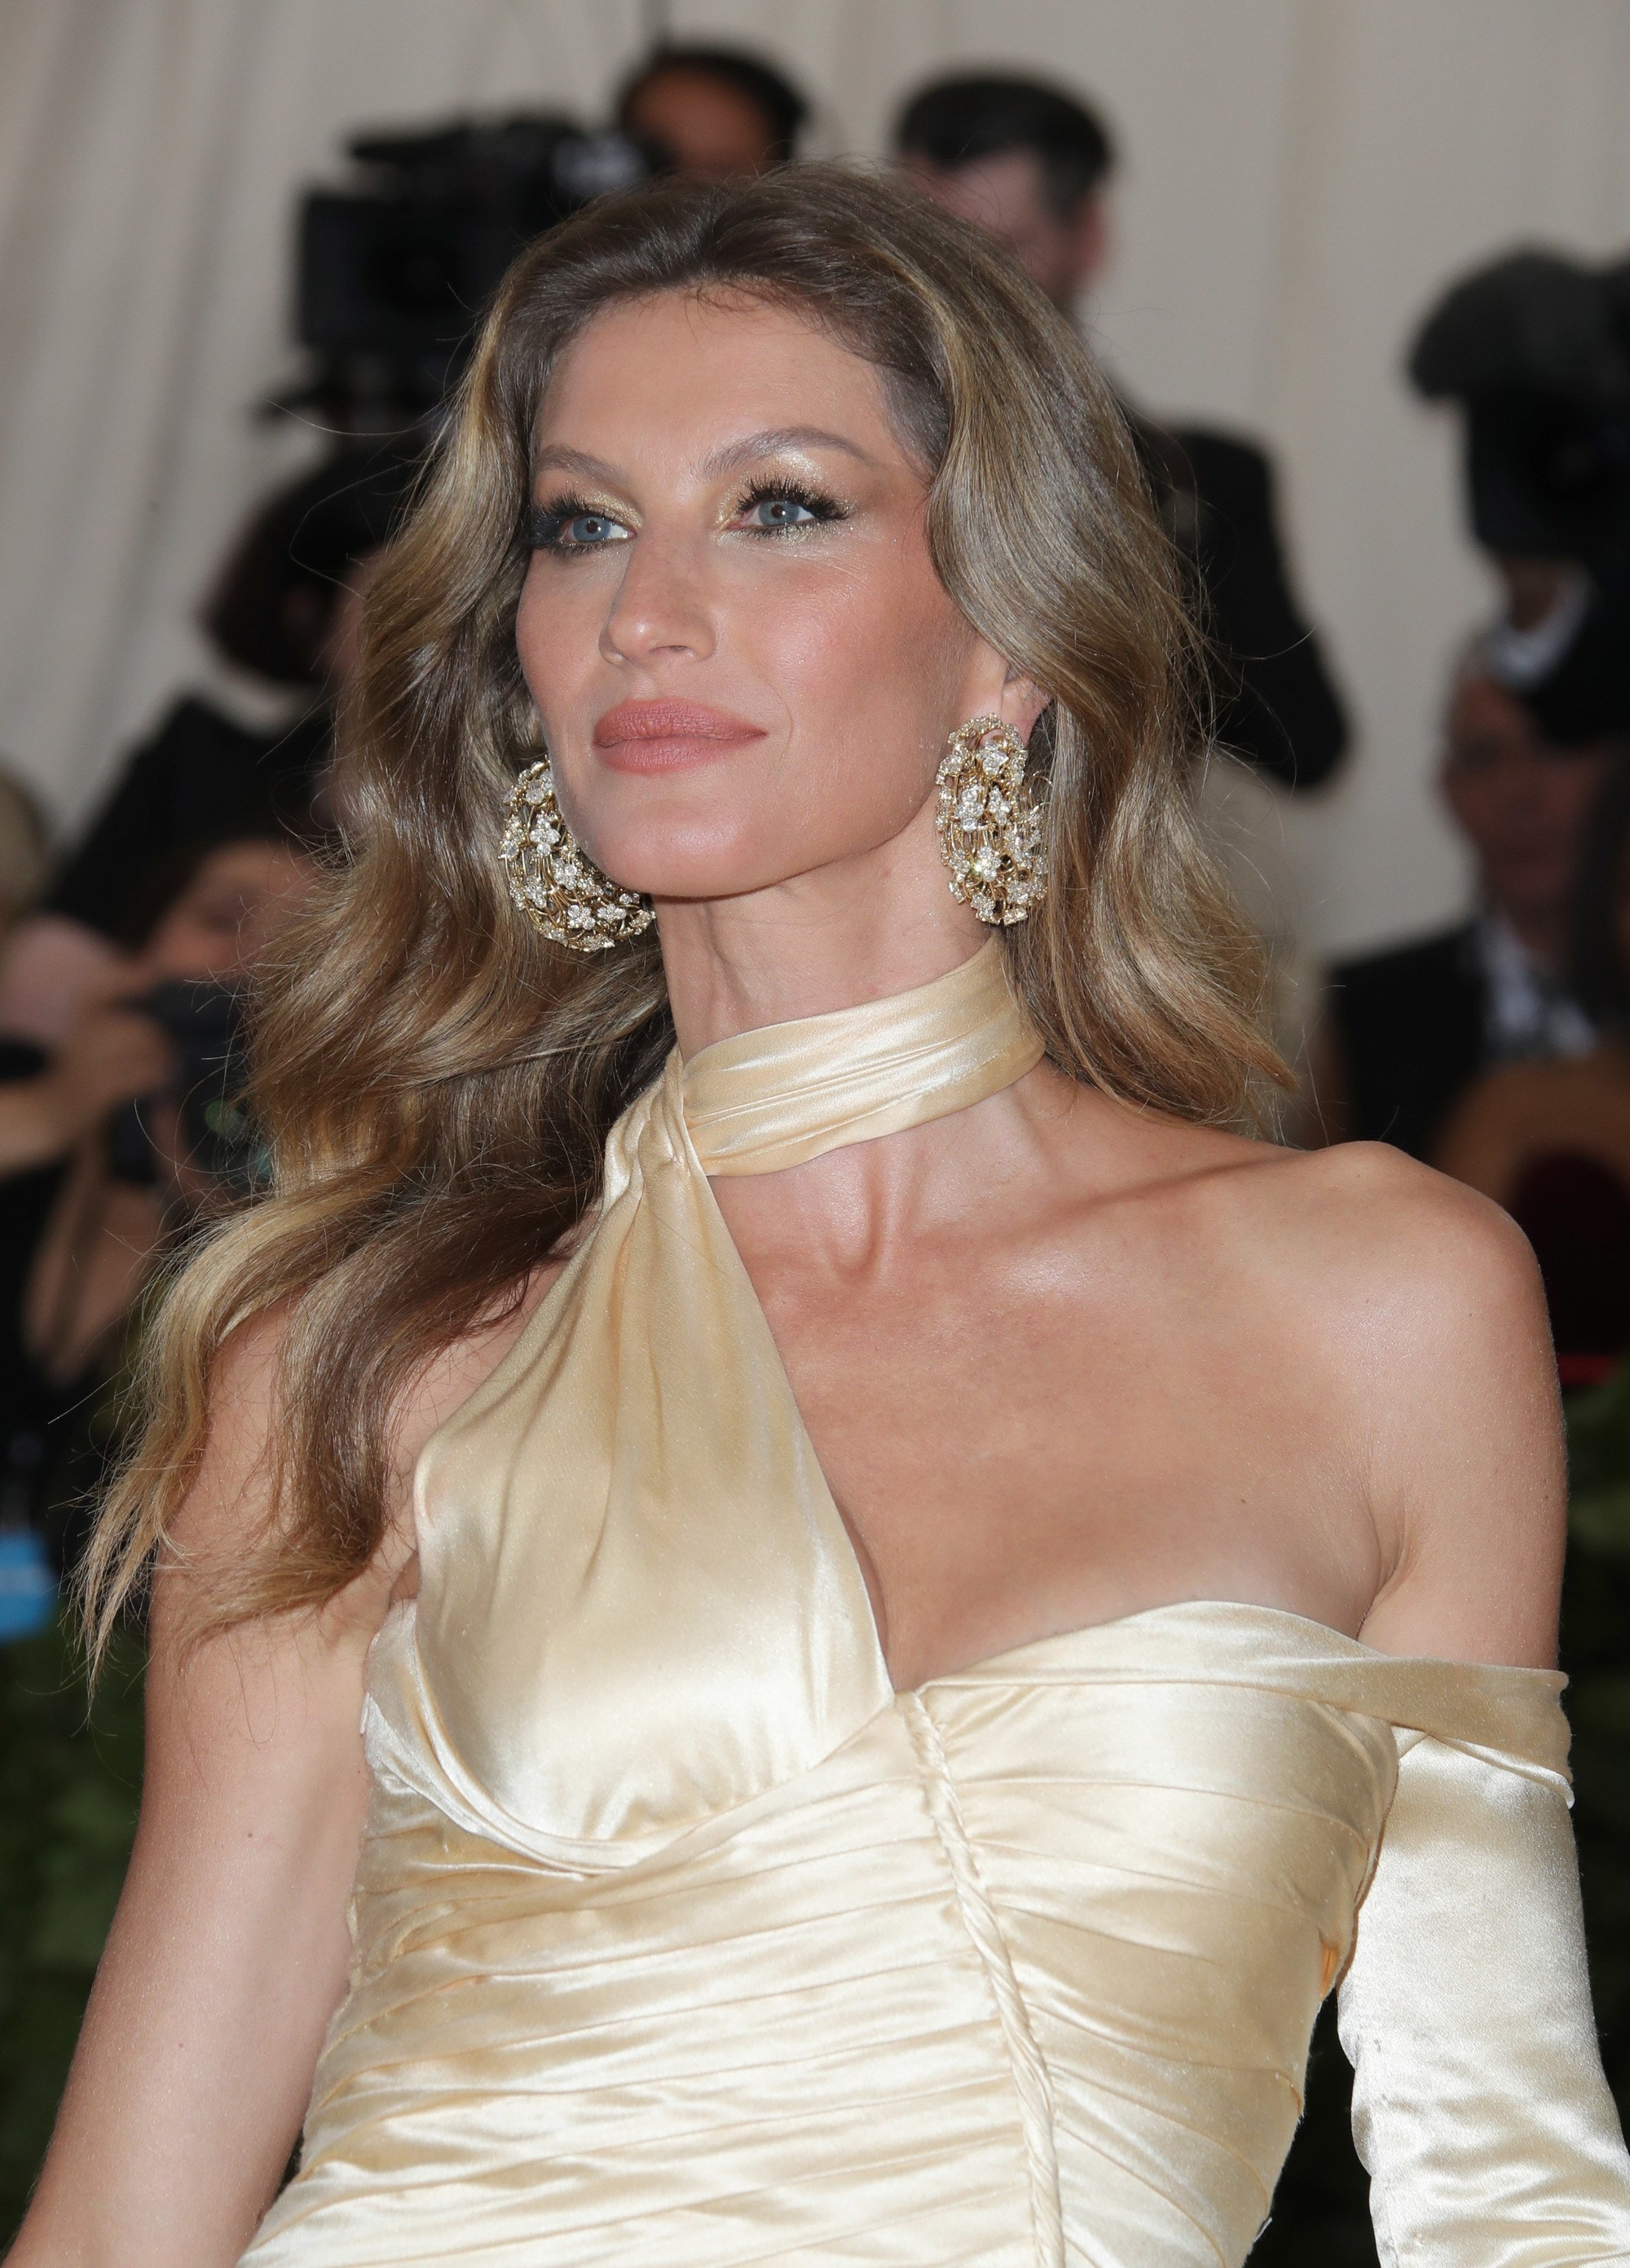 Gisele Bundchen with long chestnut brown hair with caramel highlights in it, wearing satin dress on the red carpet